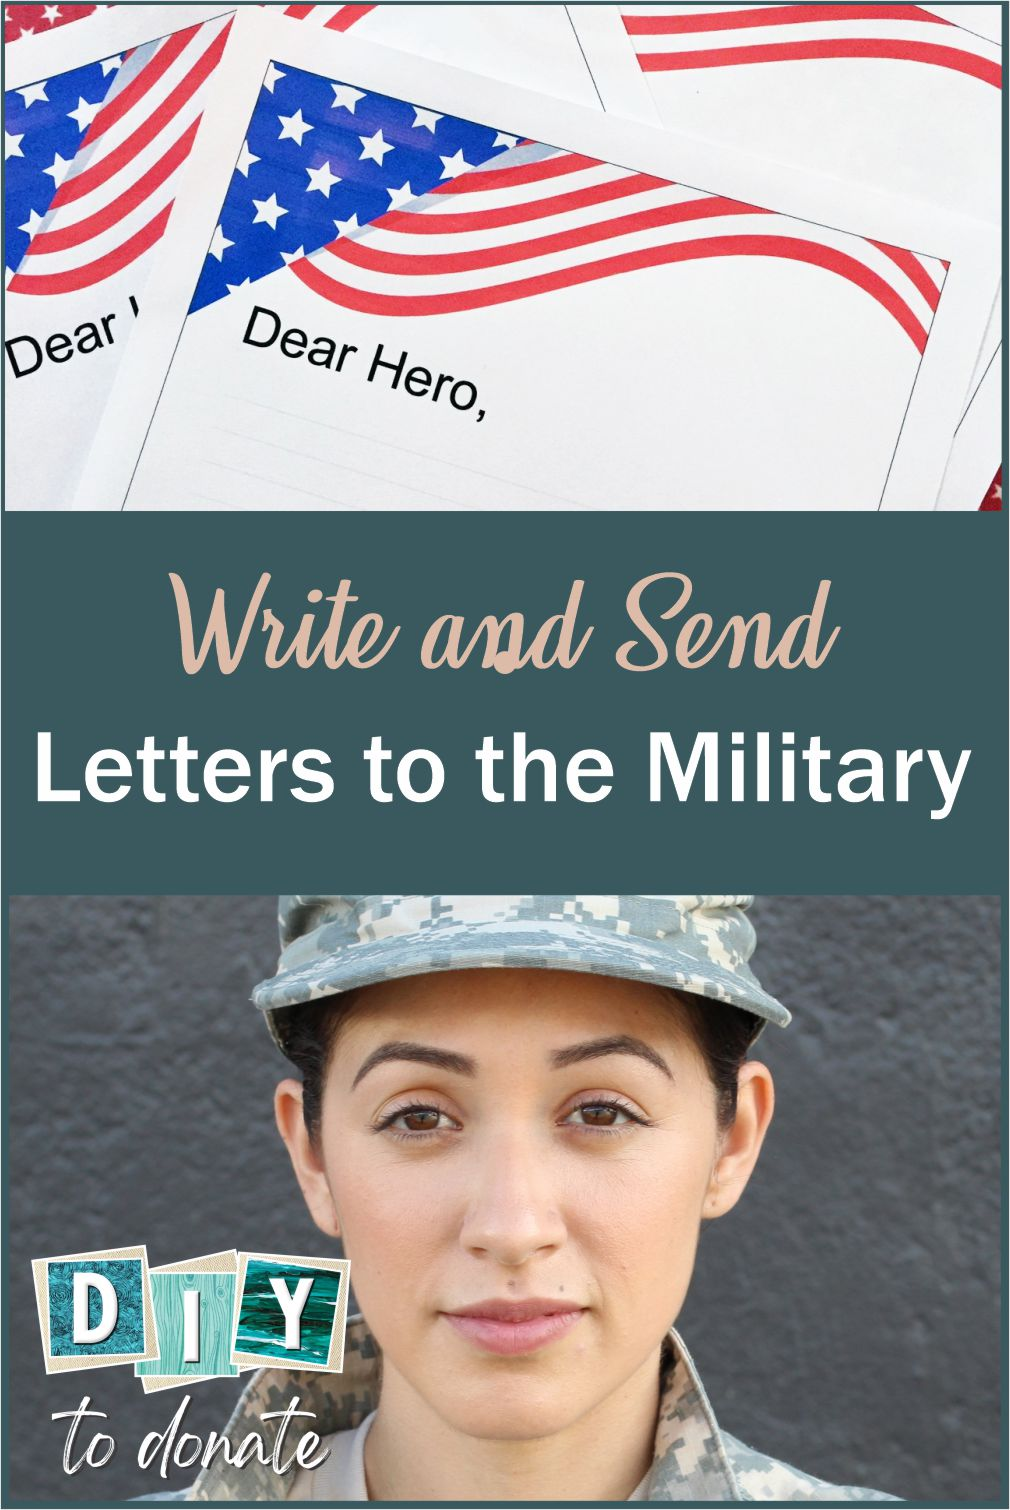 How to Write Letters to our Military Download our free printable, use the guidelines provided to write letters to our military and find out where to send them. #diytodonate #diy #letterstothemilitary #letterstoheroes #Military #heroes #militaryheroes #letters #crafts #free